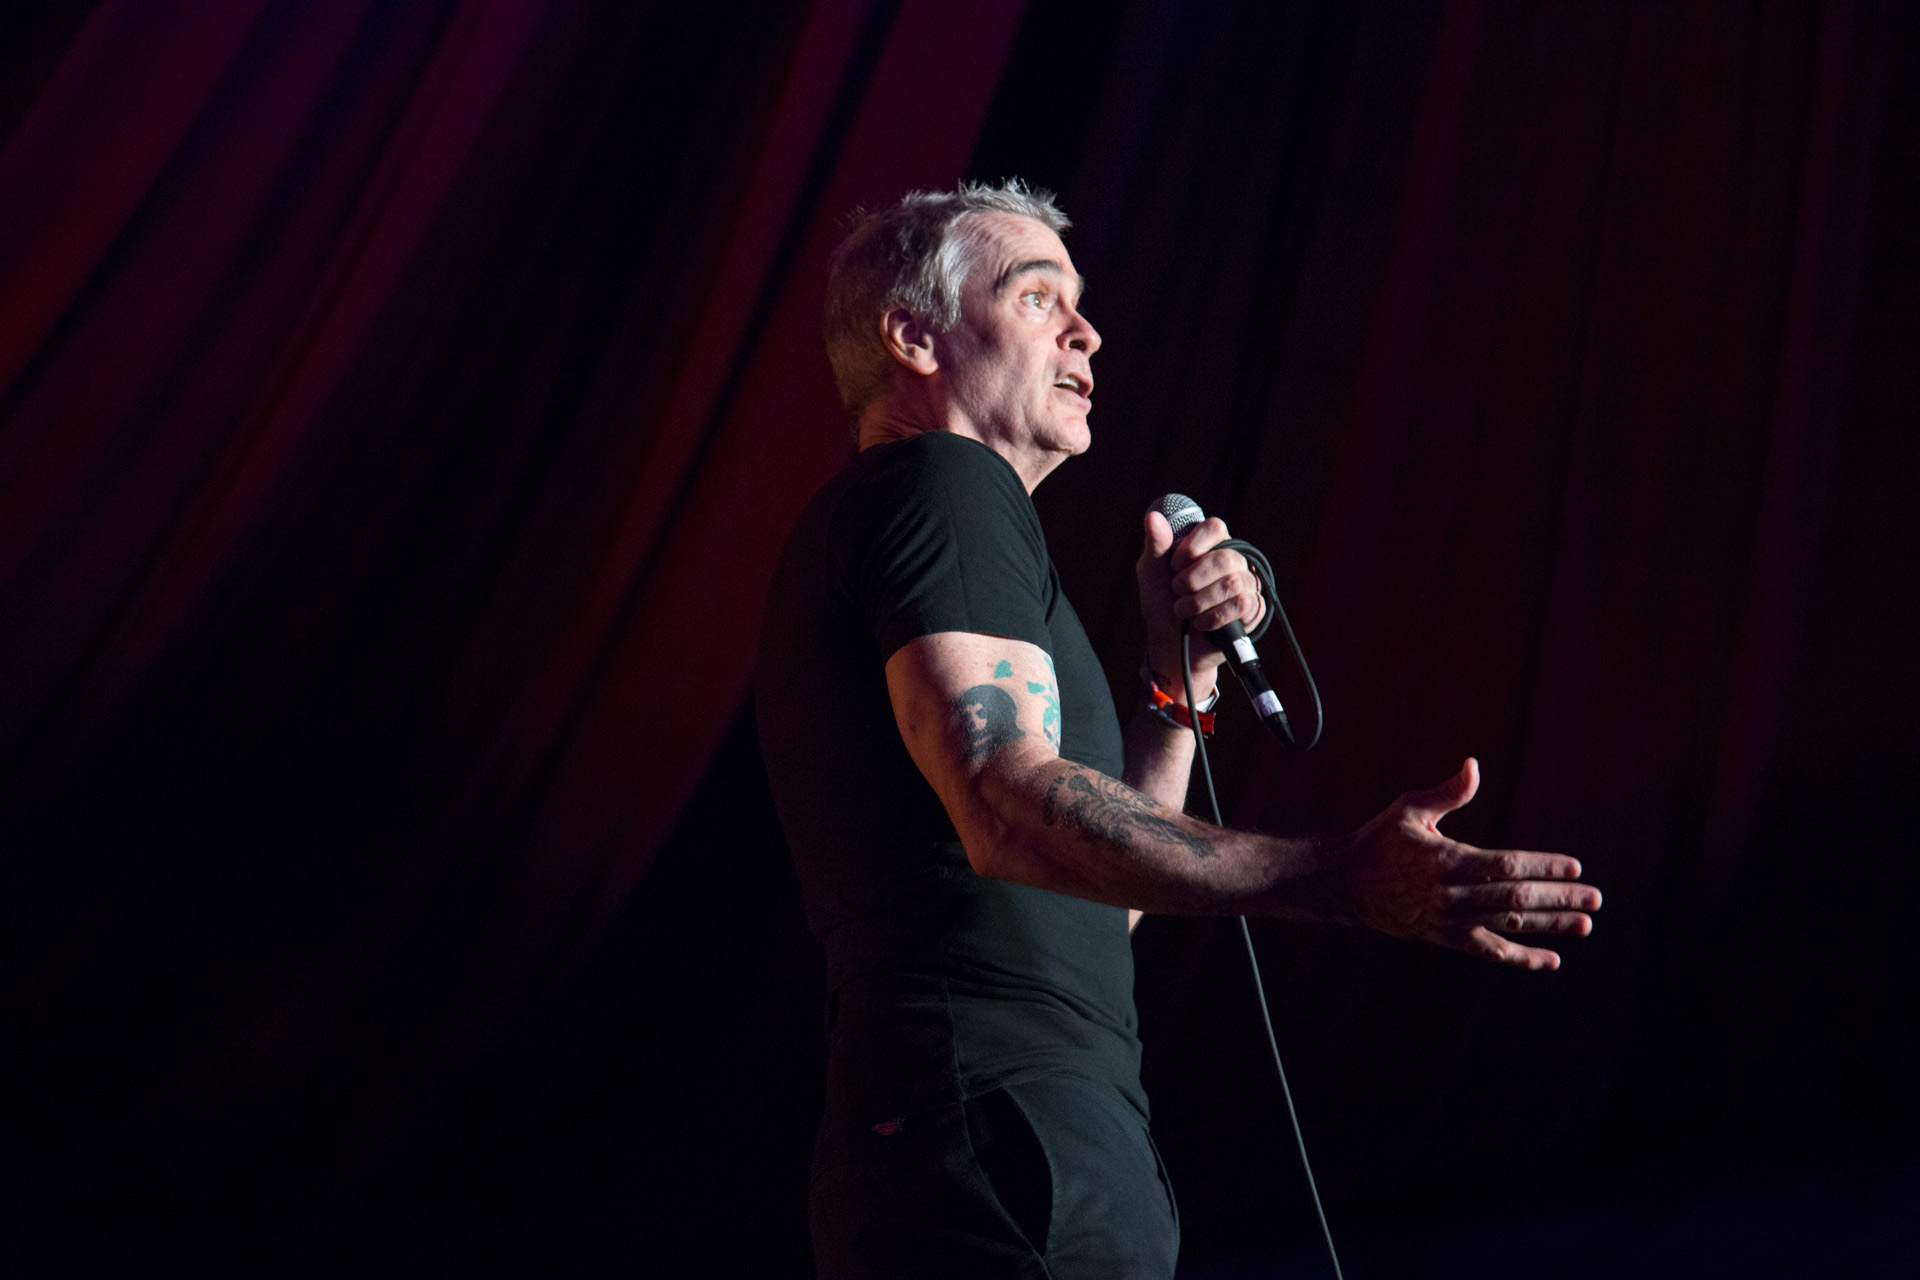 Henry Rollins performs at the Outside Lands music festival in San Francisco, Aug. 11, 2017.